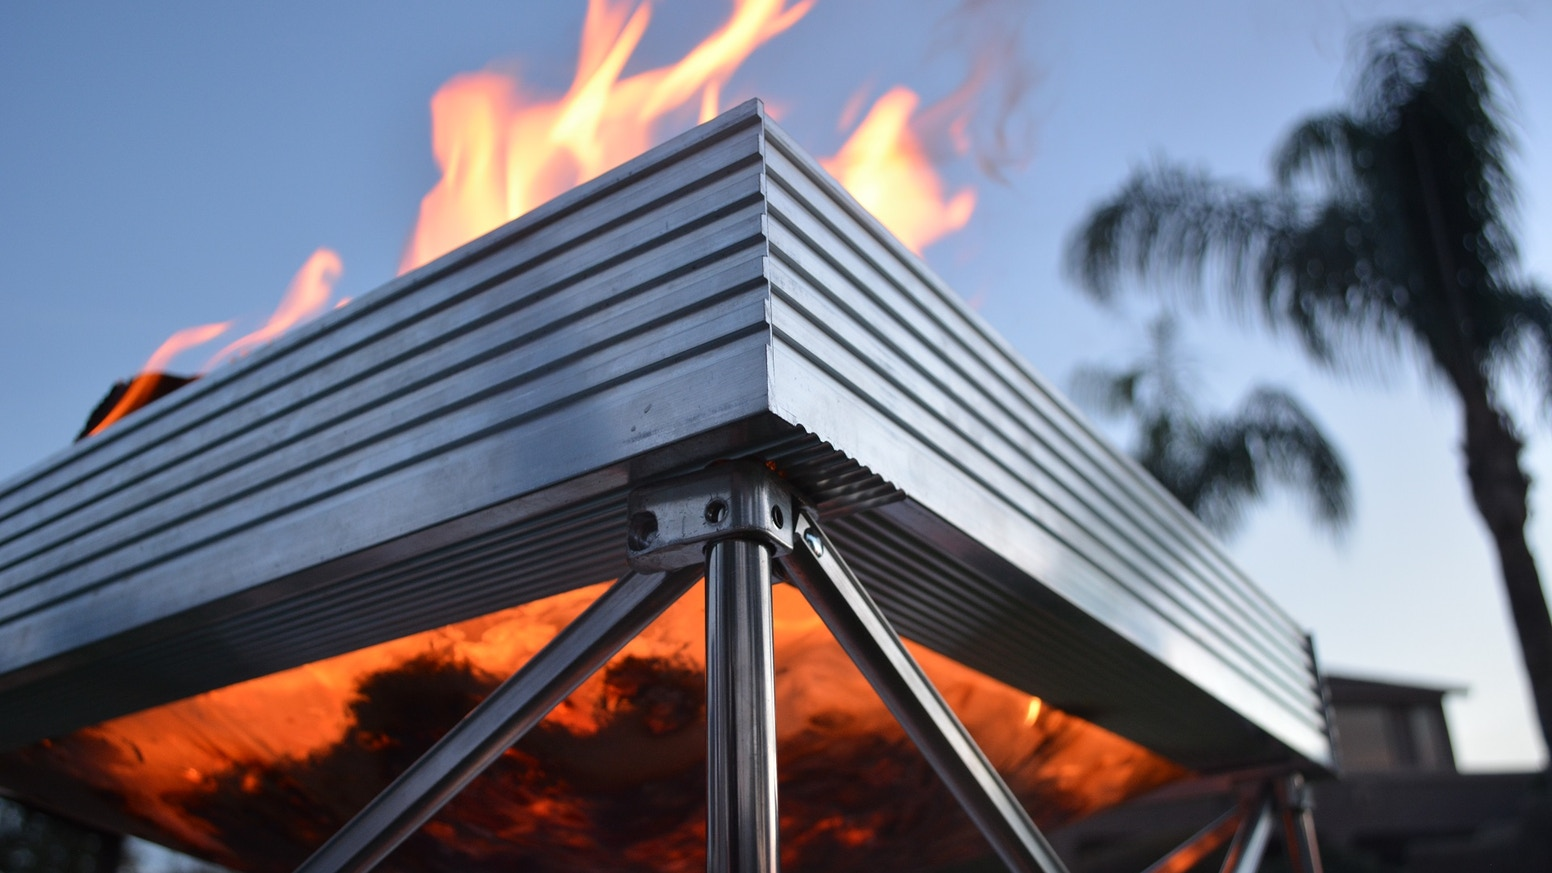 Leaves No Trace, Packs up smaller than a Camping Chair. Weighs just 8 lbs. Adaptable accessories for any type of fire.